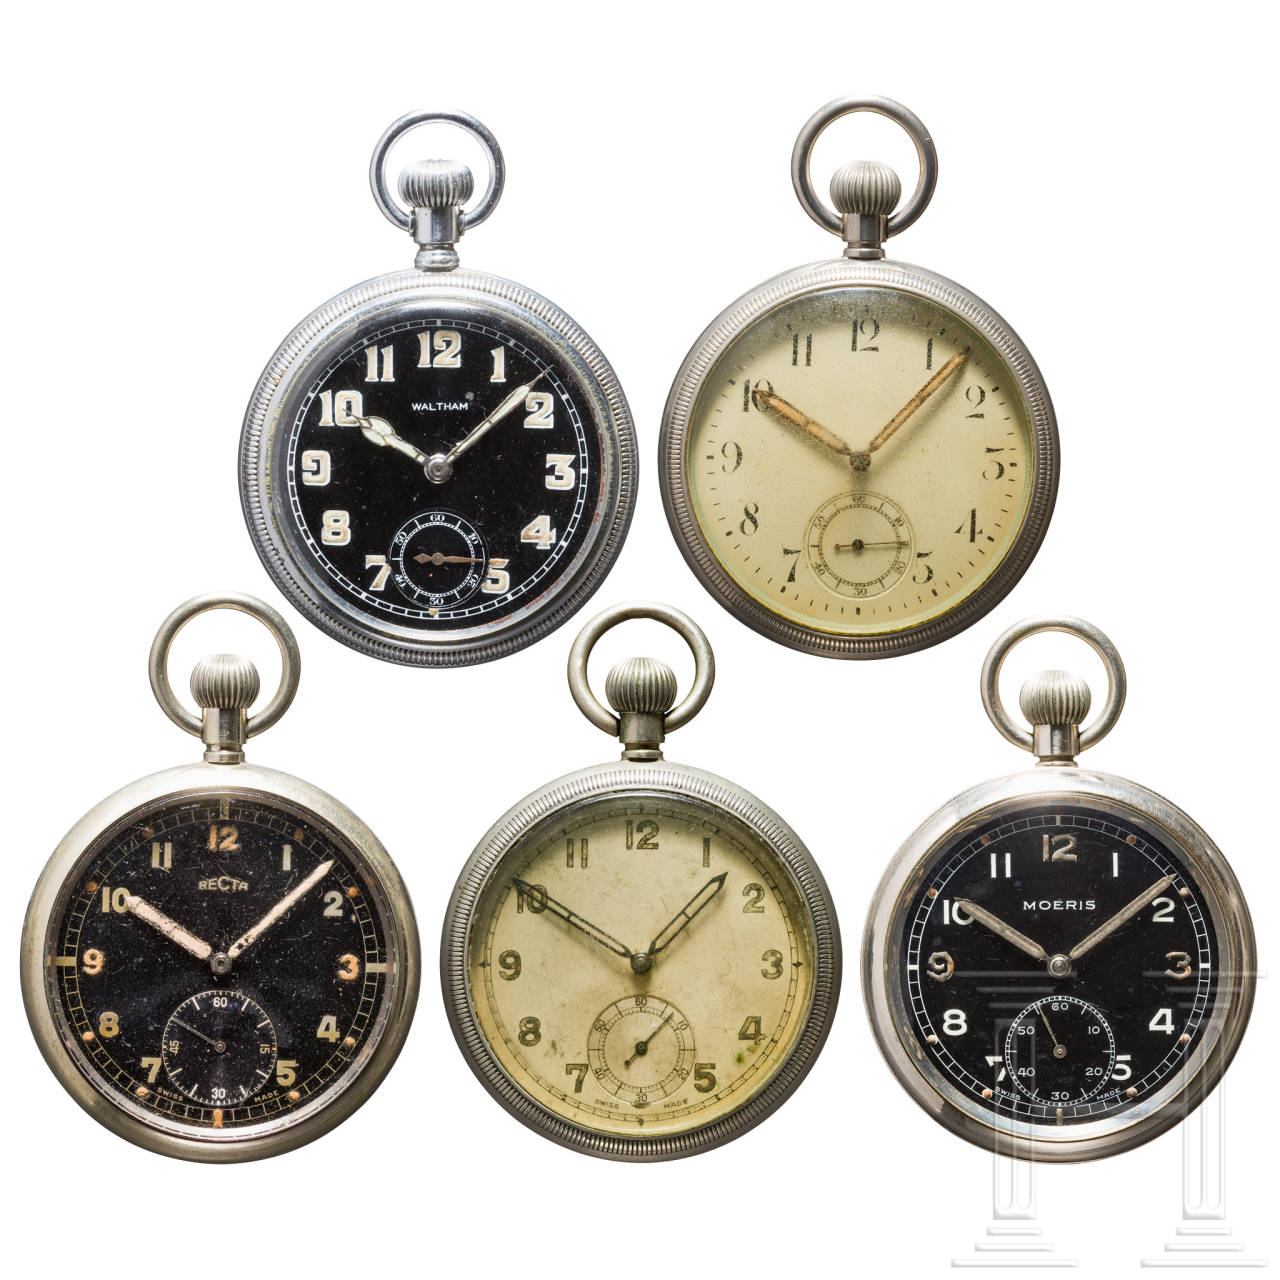 Five service watches of the British Army